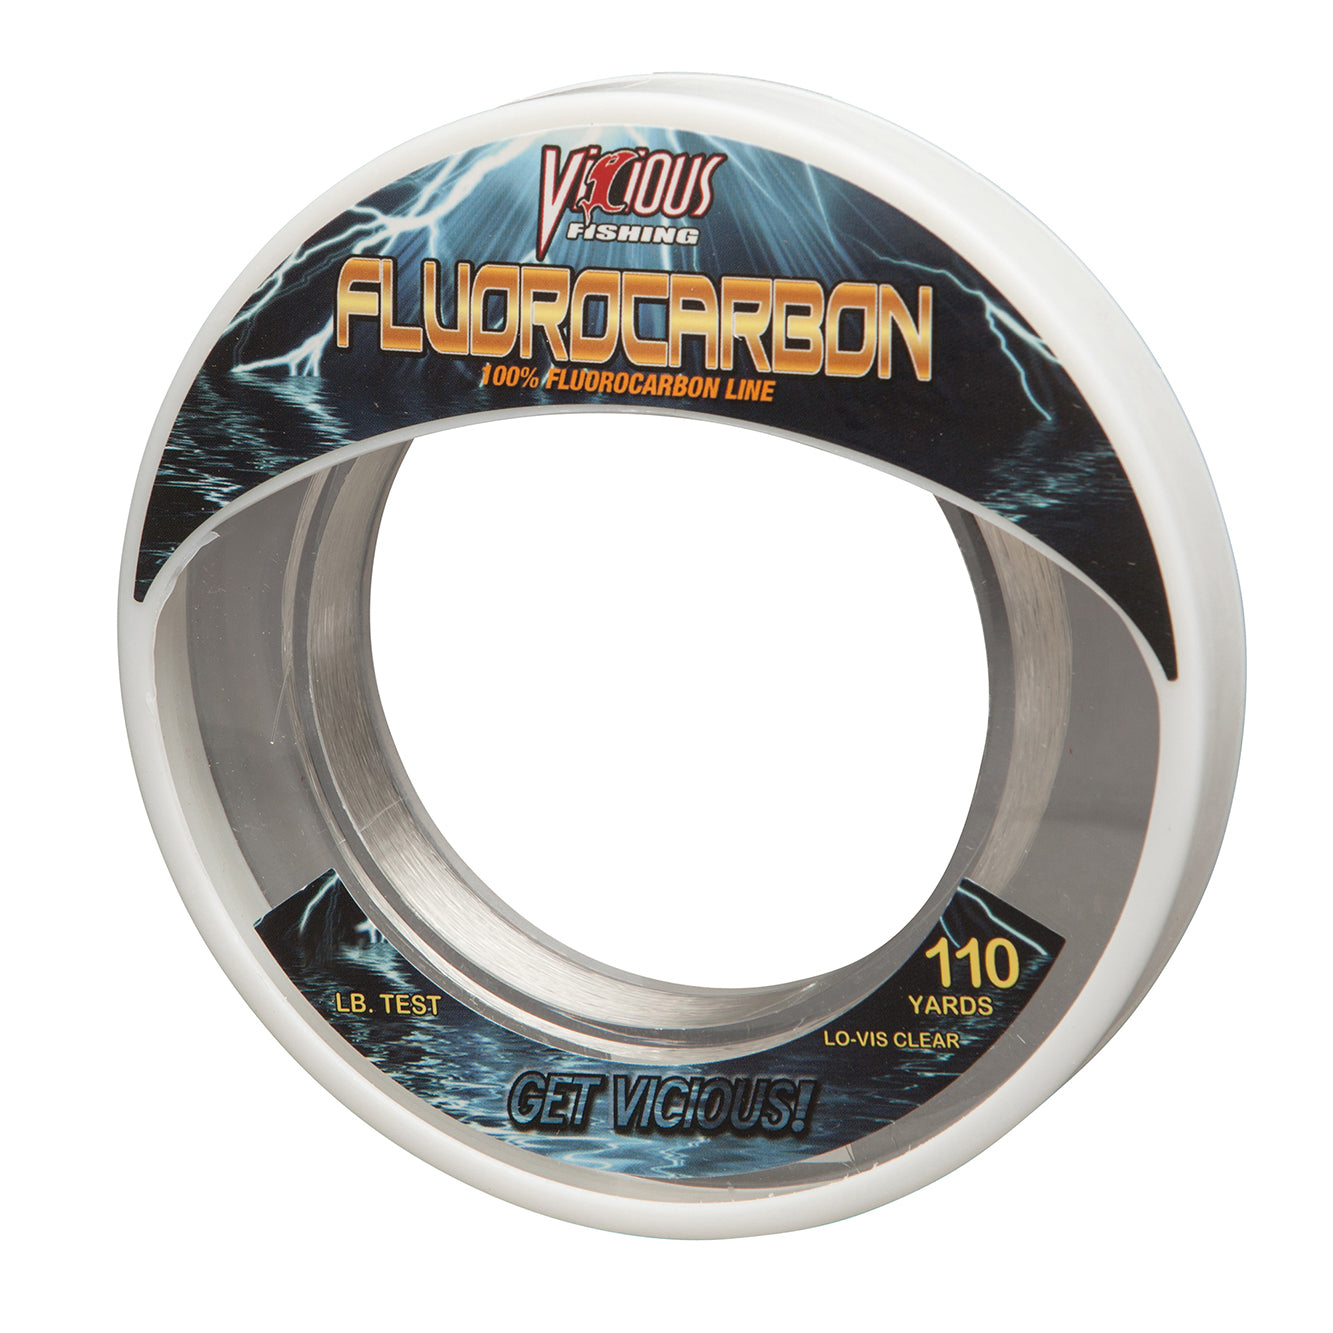 15lb Vicious Fluorocarbon Leader - 110 Yards